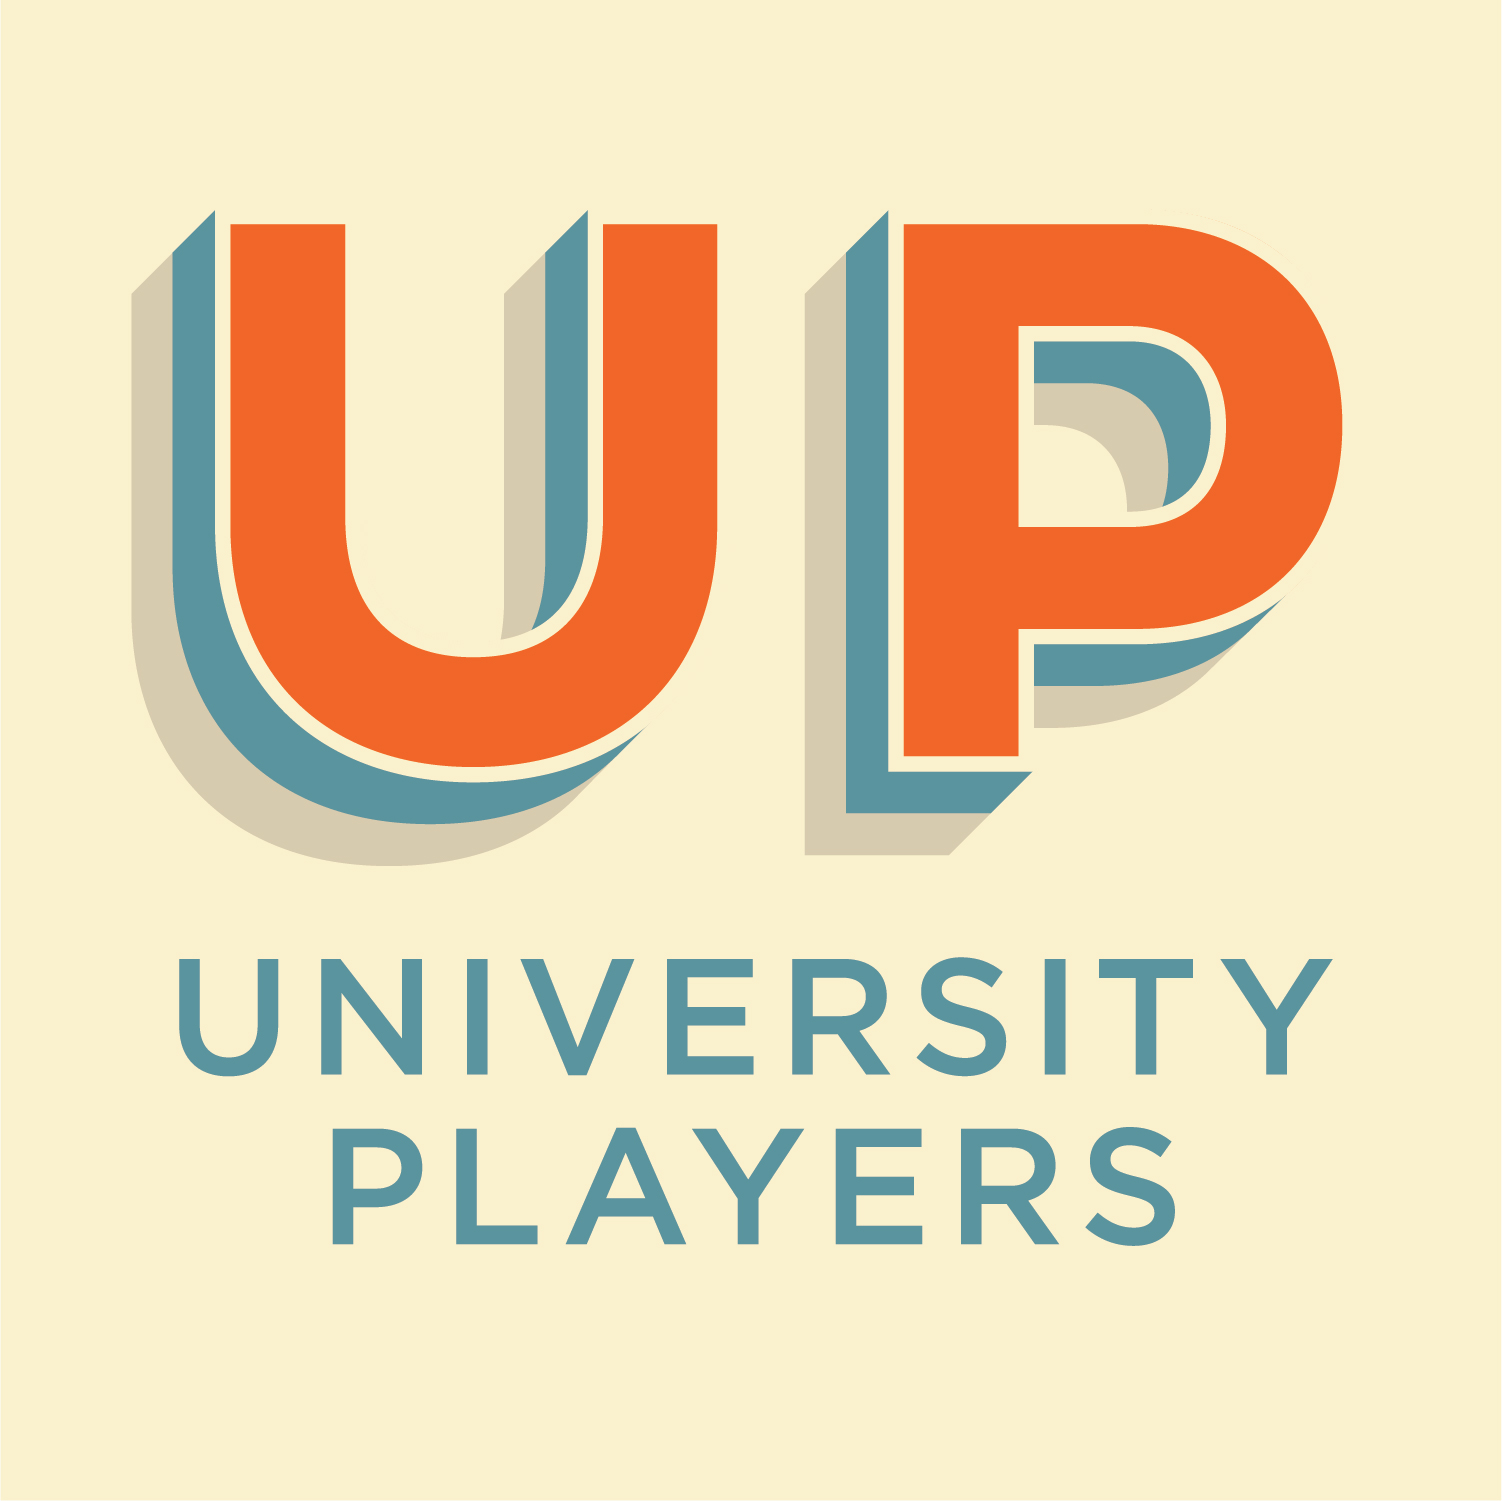 University Players Logo Yelo